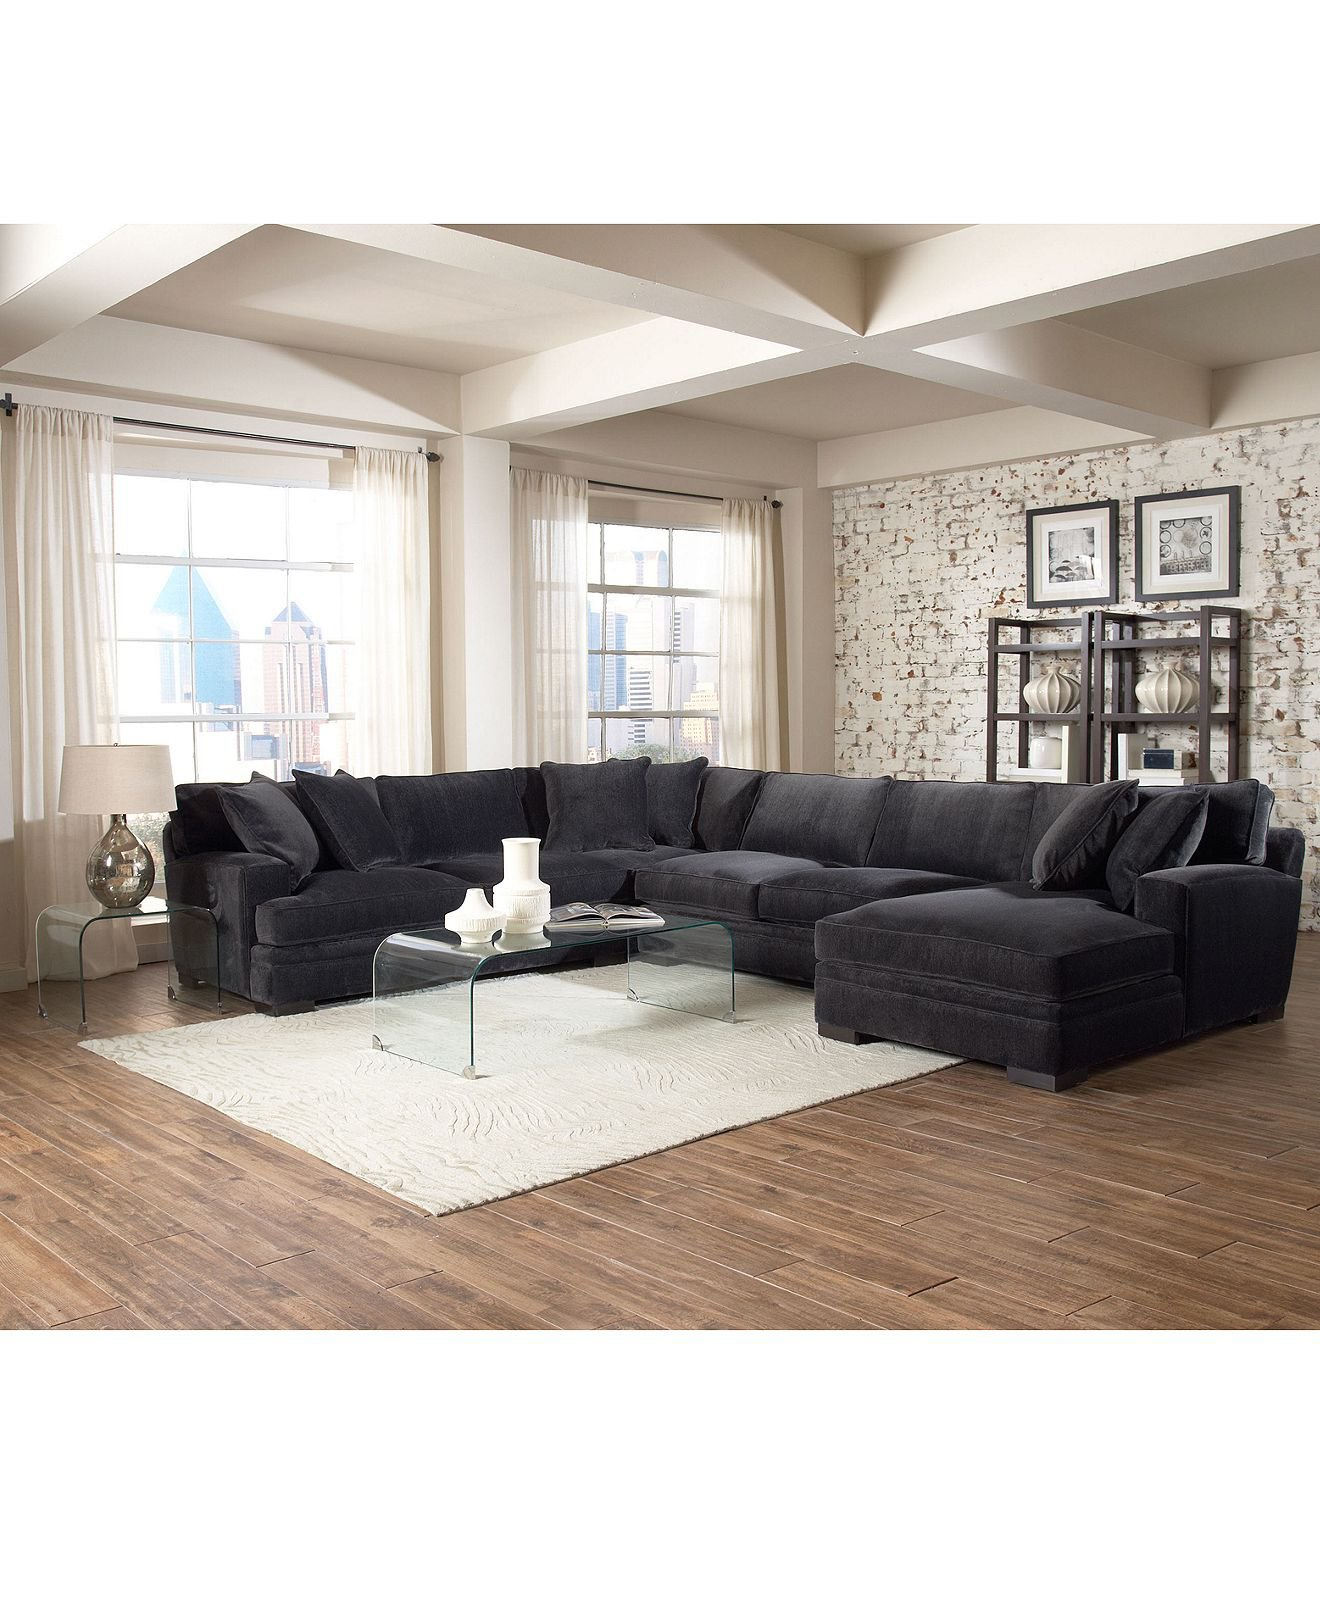 macy s furniture sofa tables nicoletti leather review teddy fabric sectional living room from macys misc home